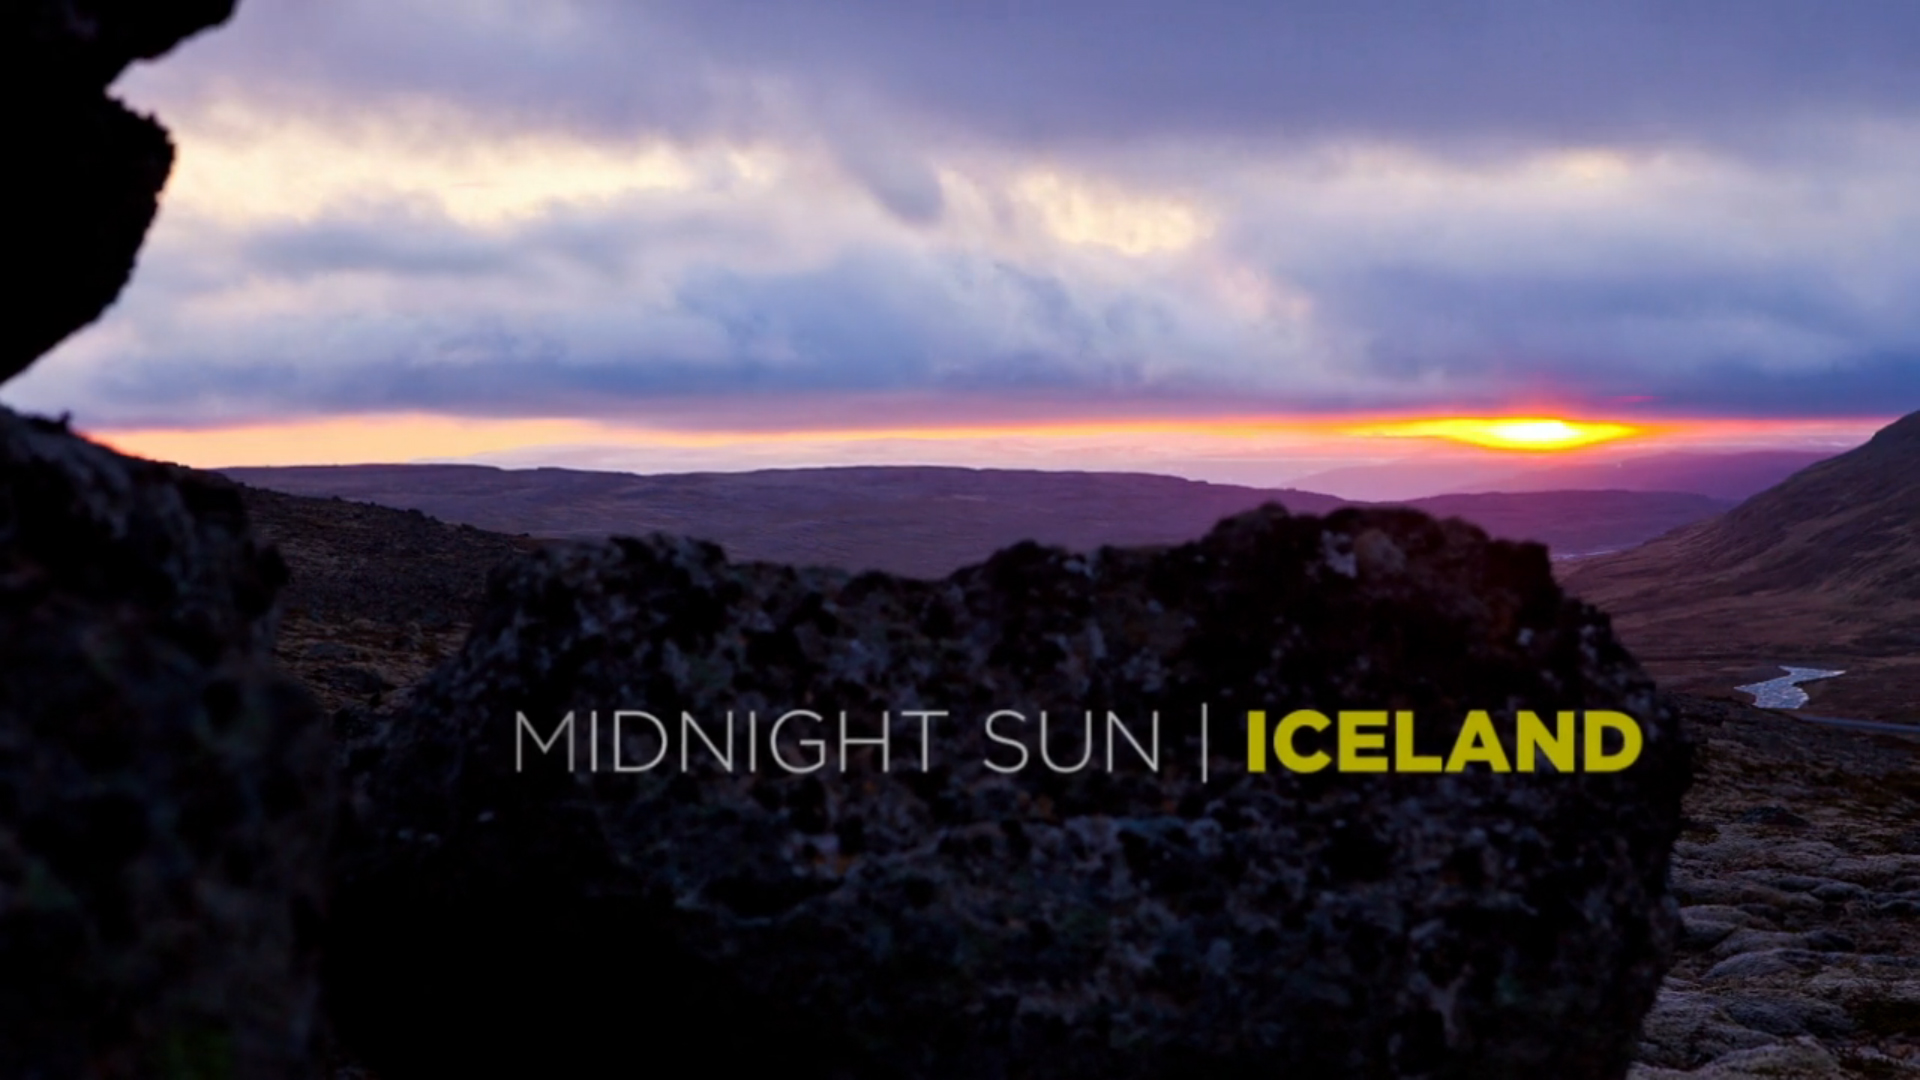 Midnight Sun is a natural phenomenon occurring in the summer months where the sun never fully sets and remains visible 24 hours a day.